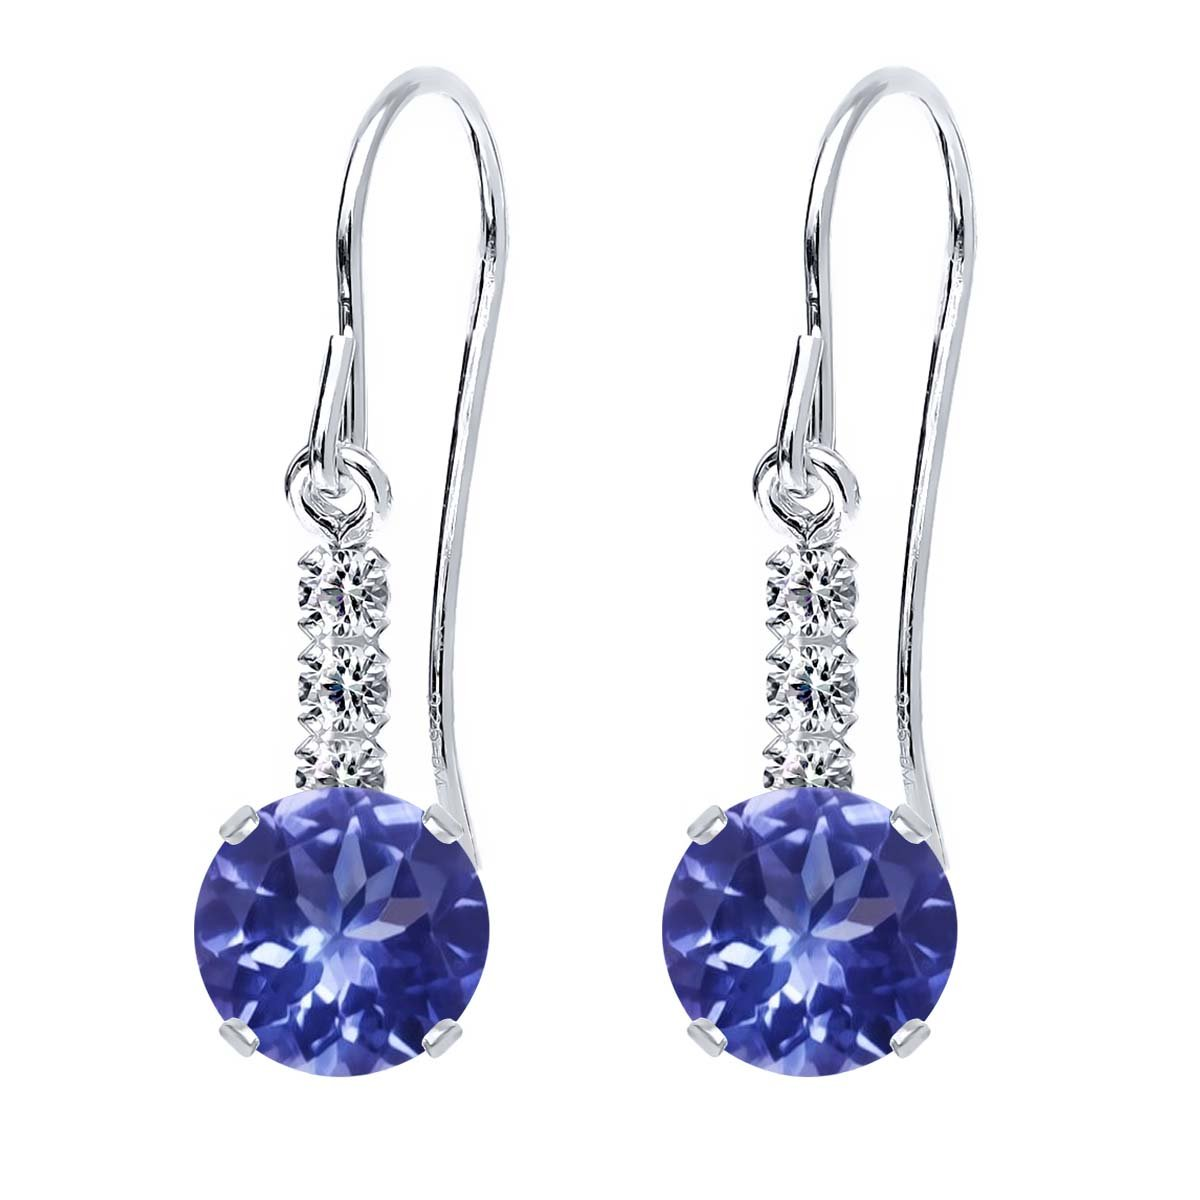 2.02 Ct Round Blue Tanzanite 925 Sterling Silver Earrings